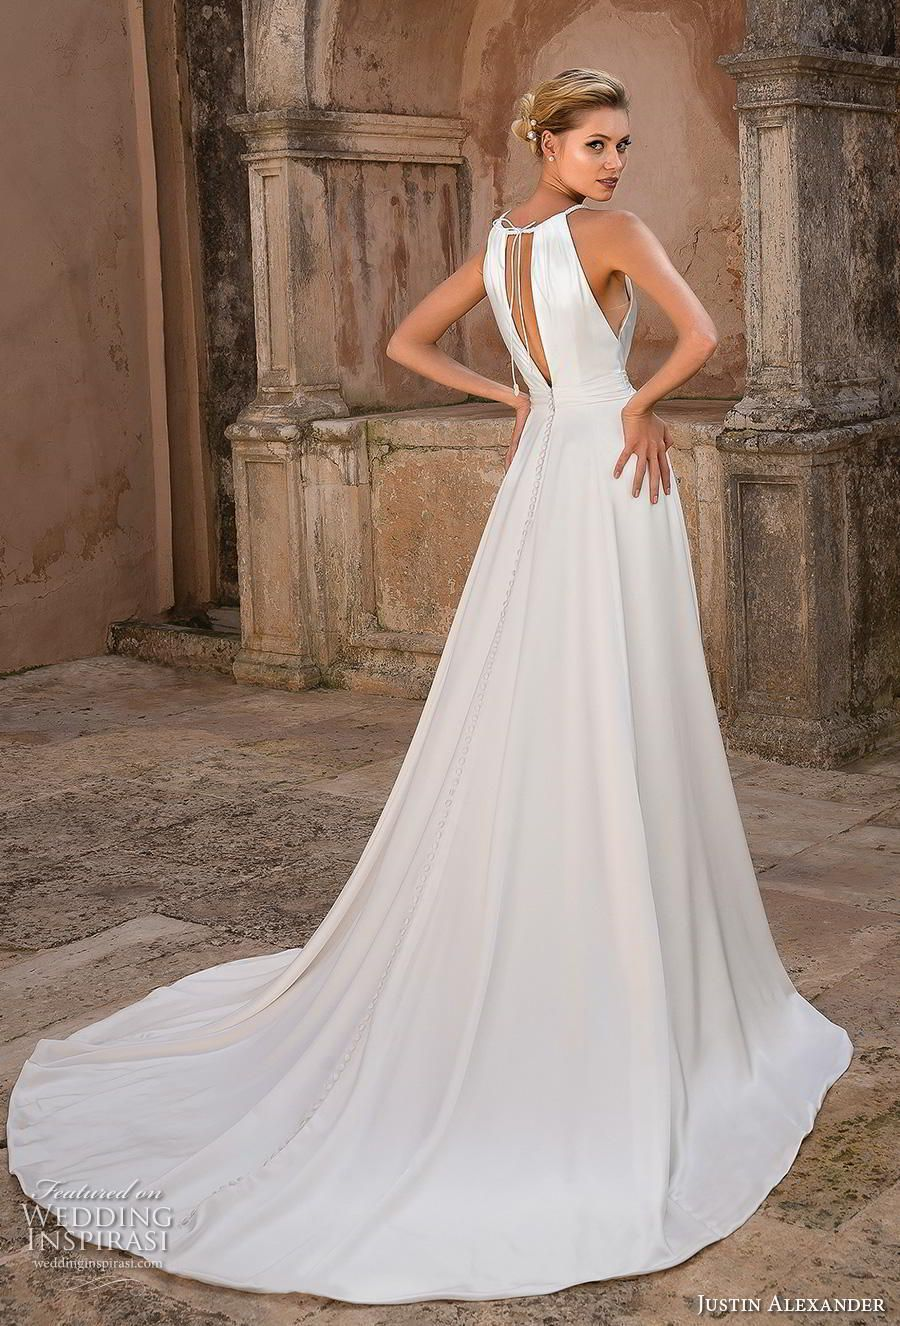 Justin Alexander Spring 2019 Wedding Dresses #grecianweddingdresses justin alexander spring 2019 bridal halter neck keyhole neckline simple elegant grecian modified a  line wedding dress keyhole back chapel train (15) bv -- Justin Alexander Spring 2019 Wedding Dresses | Wedding Inspirasi #wedding #weddings #bridal #weddingdress #weddingdresses #bride #fashion  ~ #grecianweddingdresses Justin Alexander Spring 2019 Wedding Dresses #grecianweddingdresses justin alexander spring 2019 bridal halter n #grecianweddingdresses